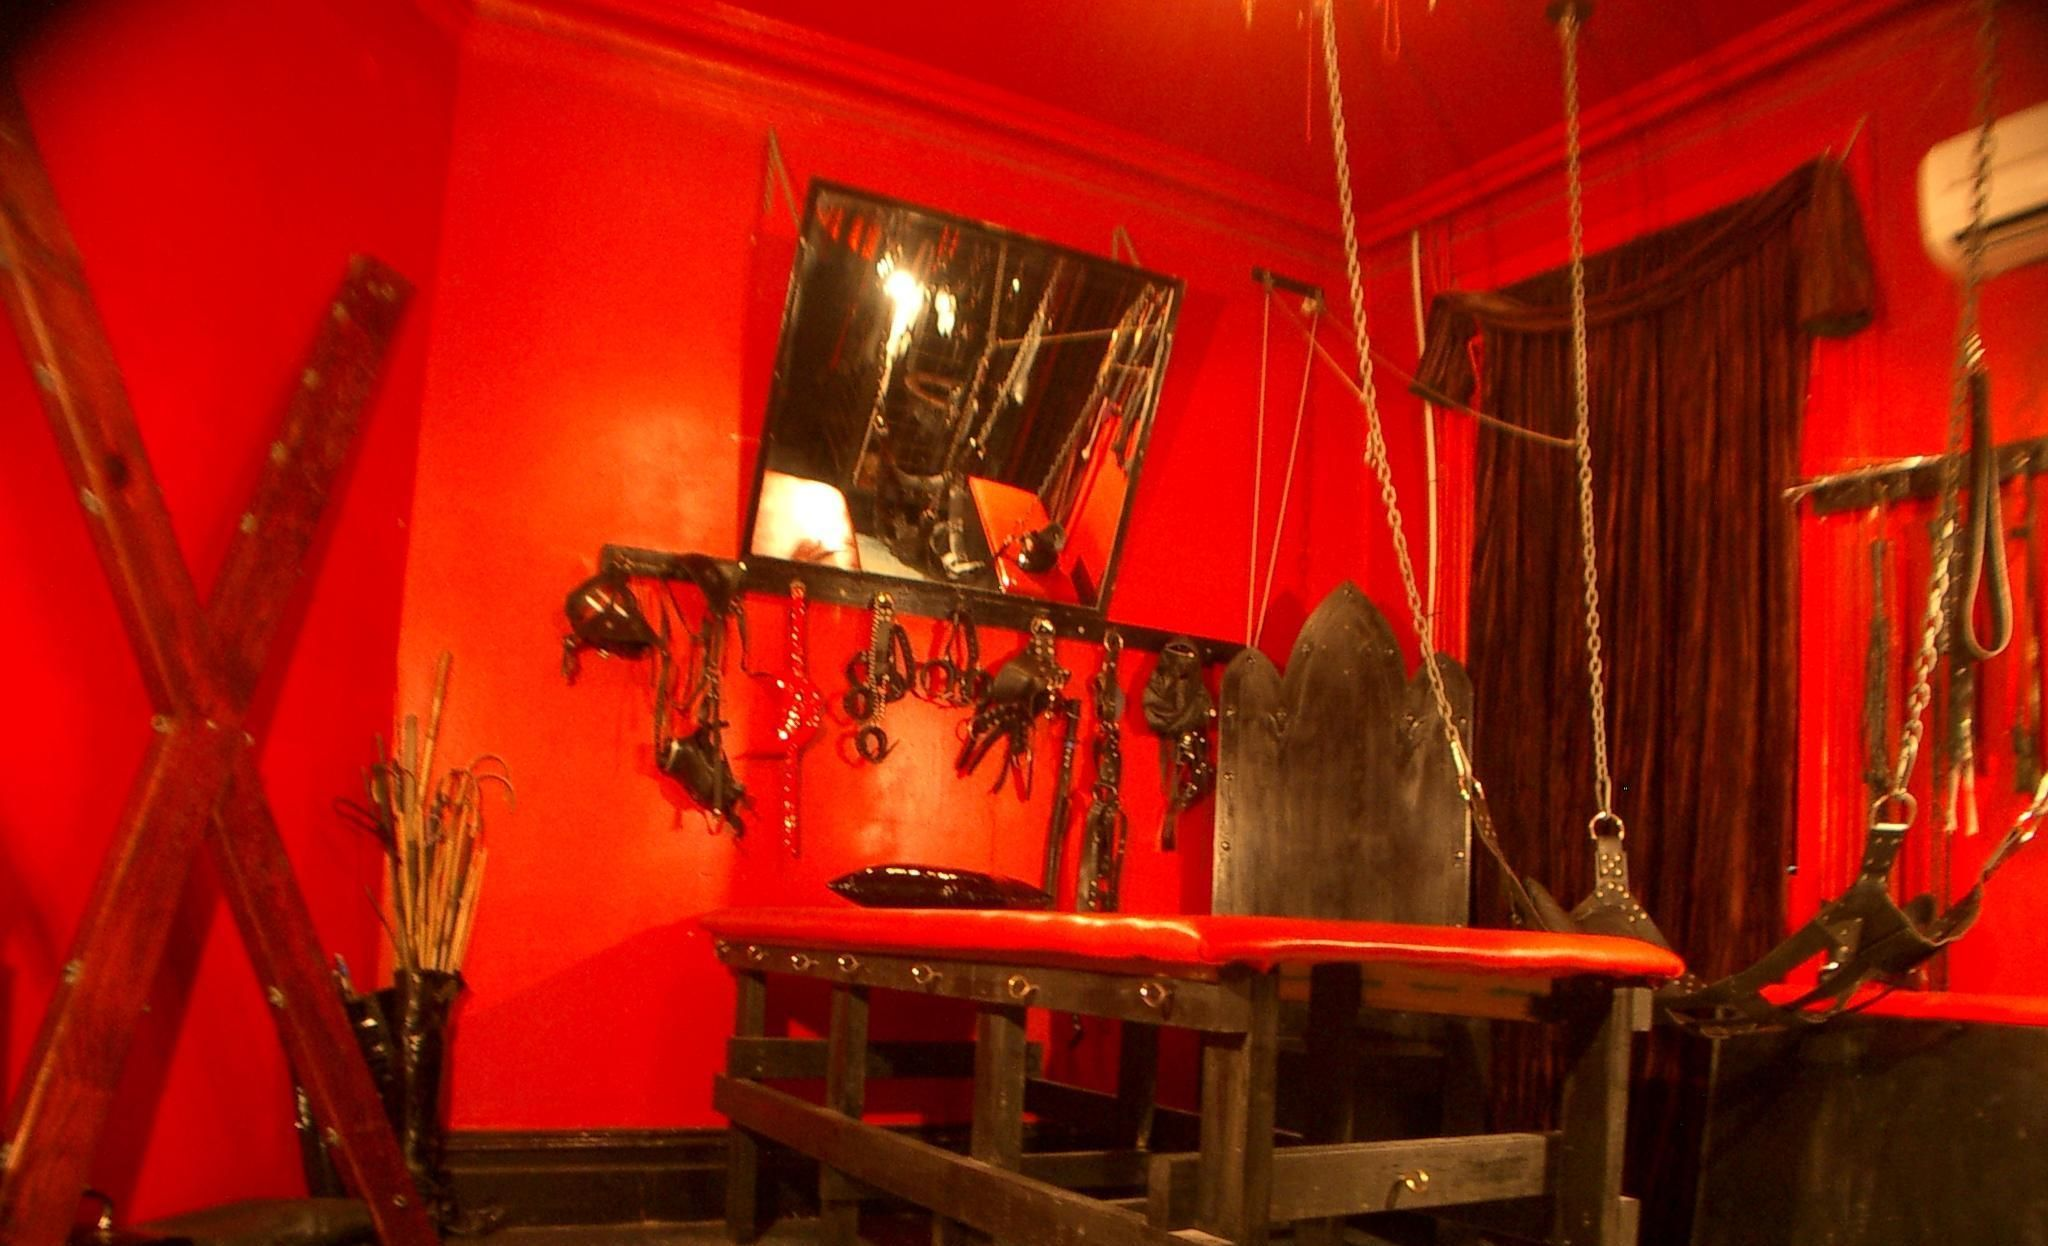 Red room of pain | Fifty Shades | Pinterest | Red rooms, Fifty ...